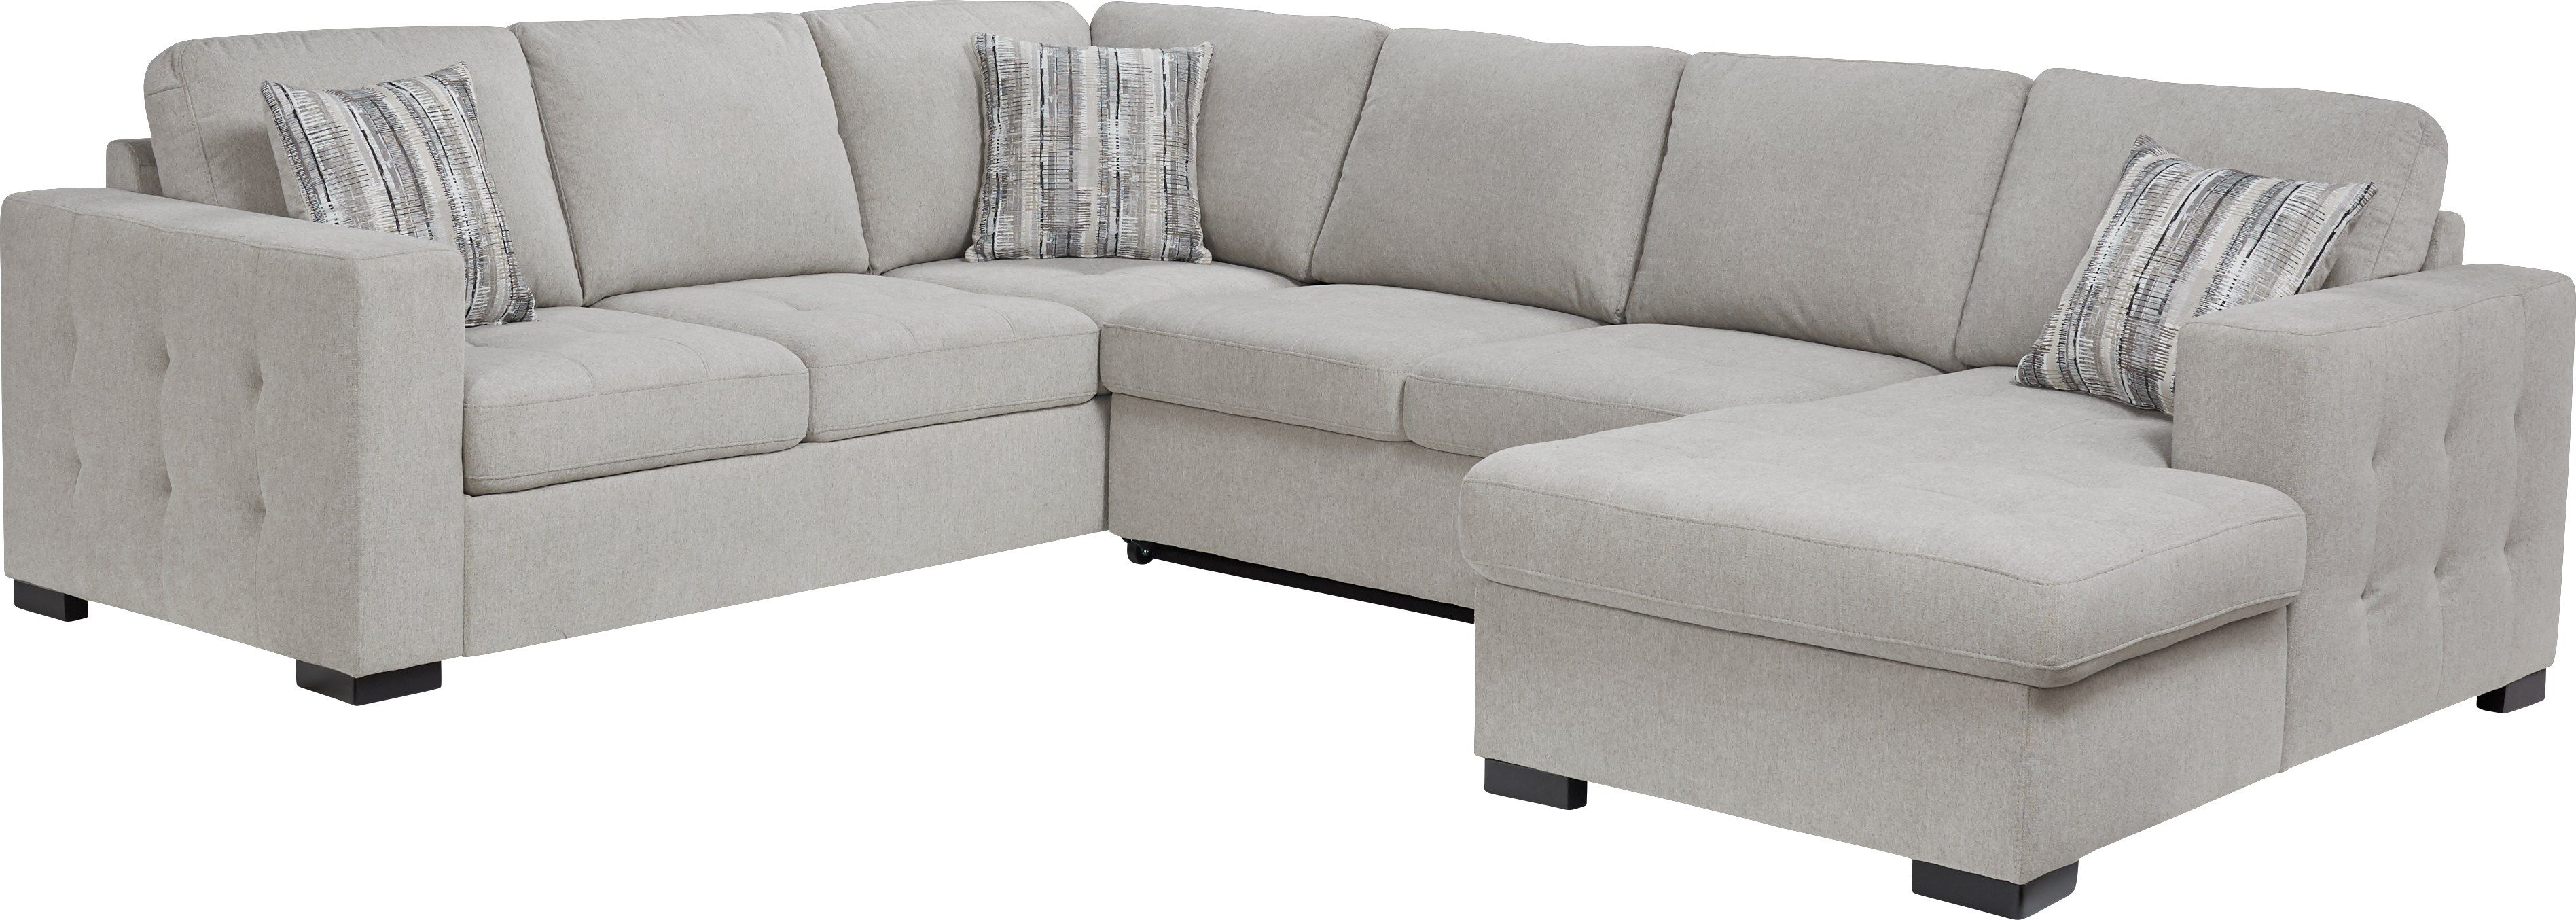 Angelino Heights Gray 3 Pc Sleeper Sectional Sleeper Sectional